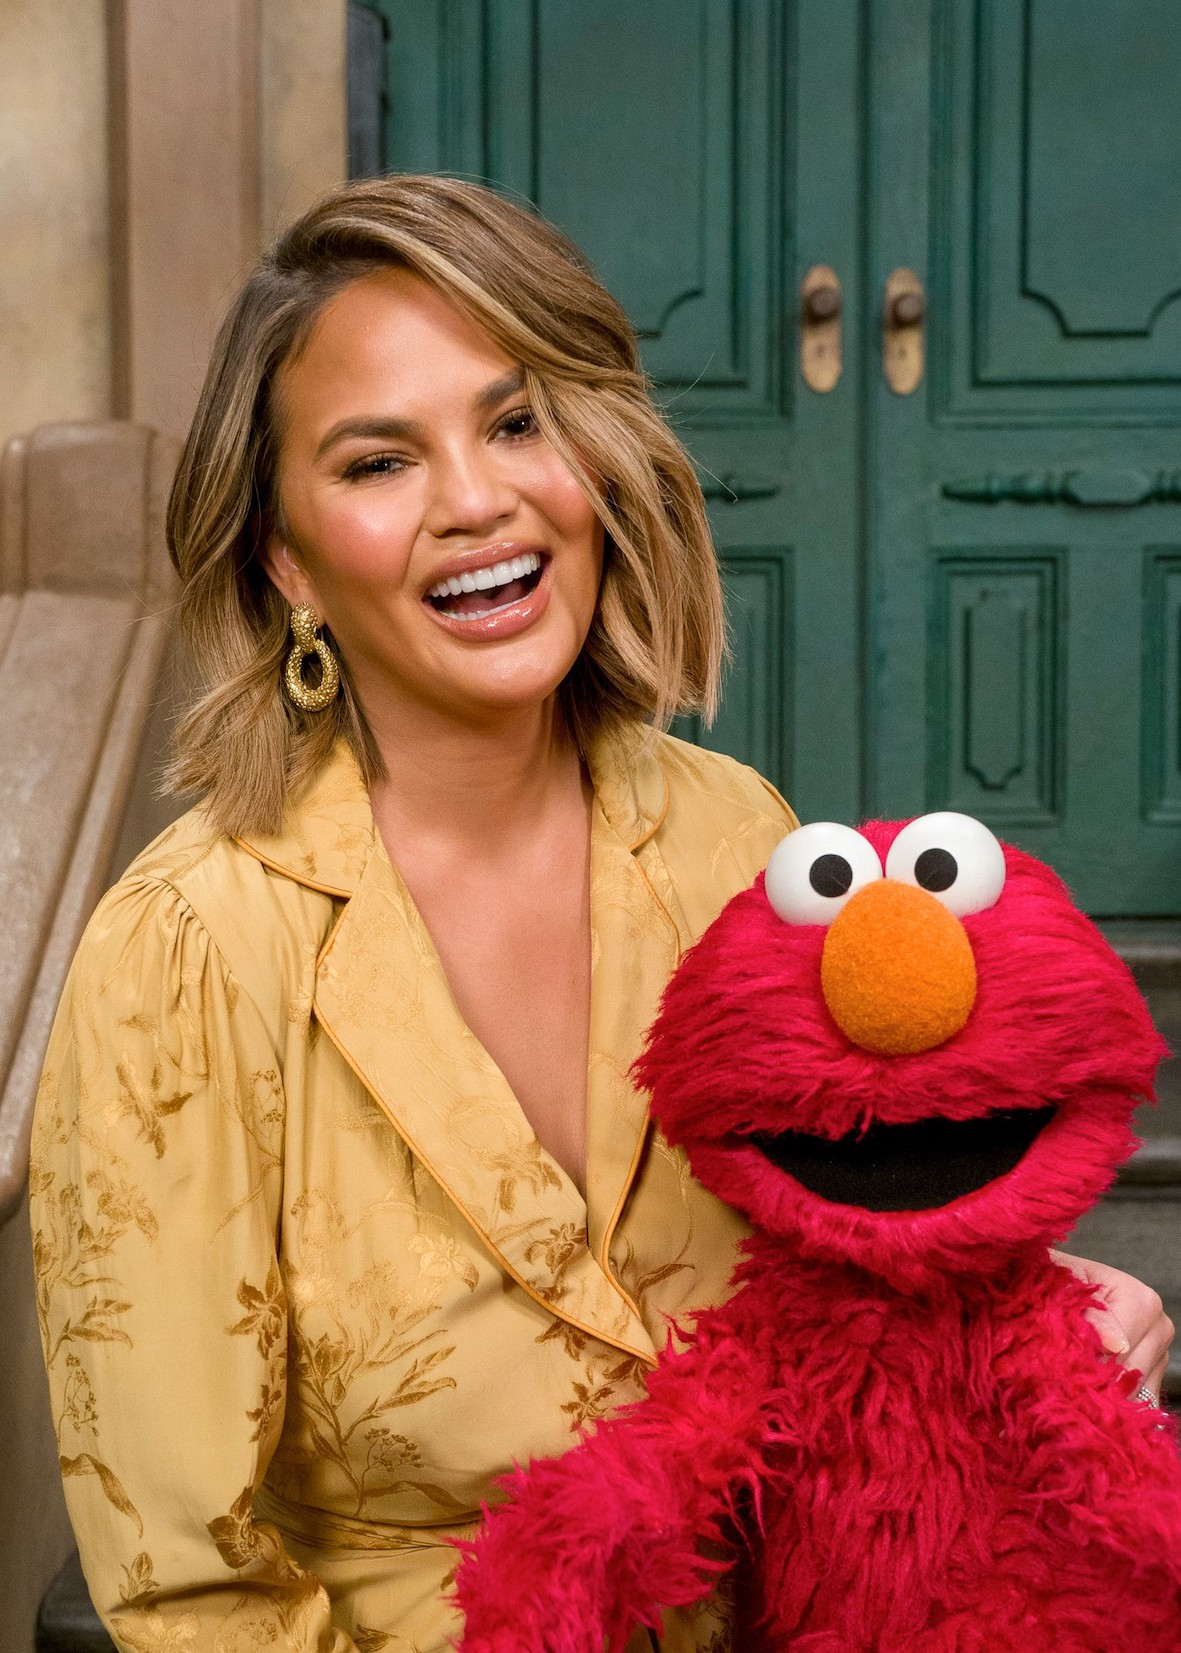 chrissy-teigen-2-c-sesame-workshop-richard-termine